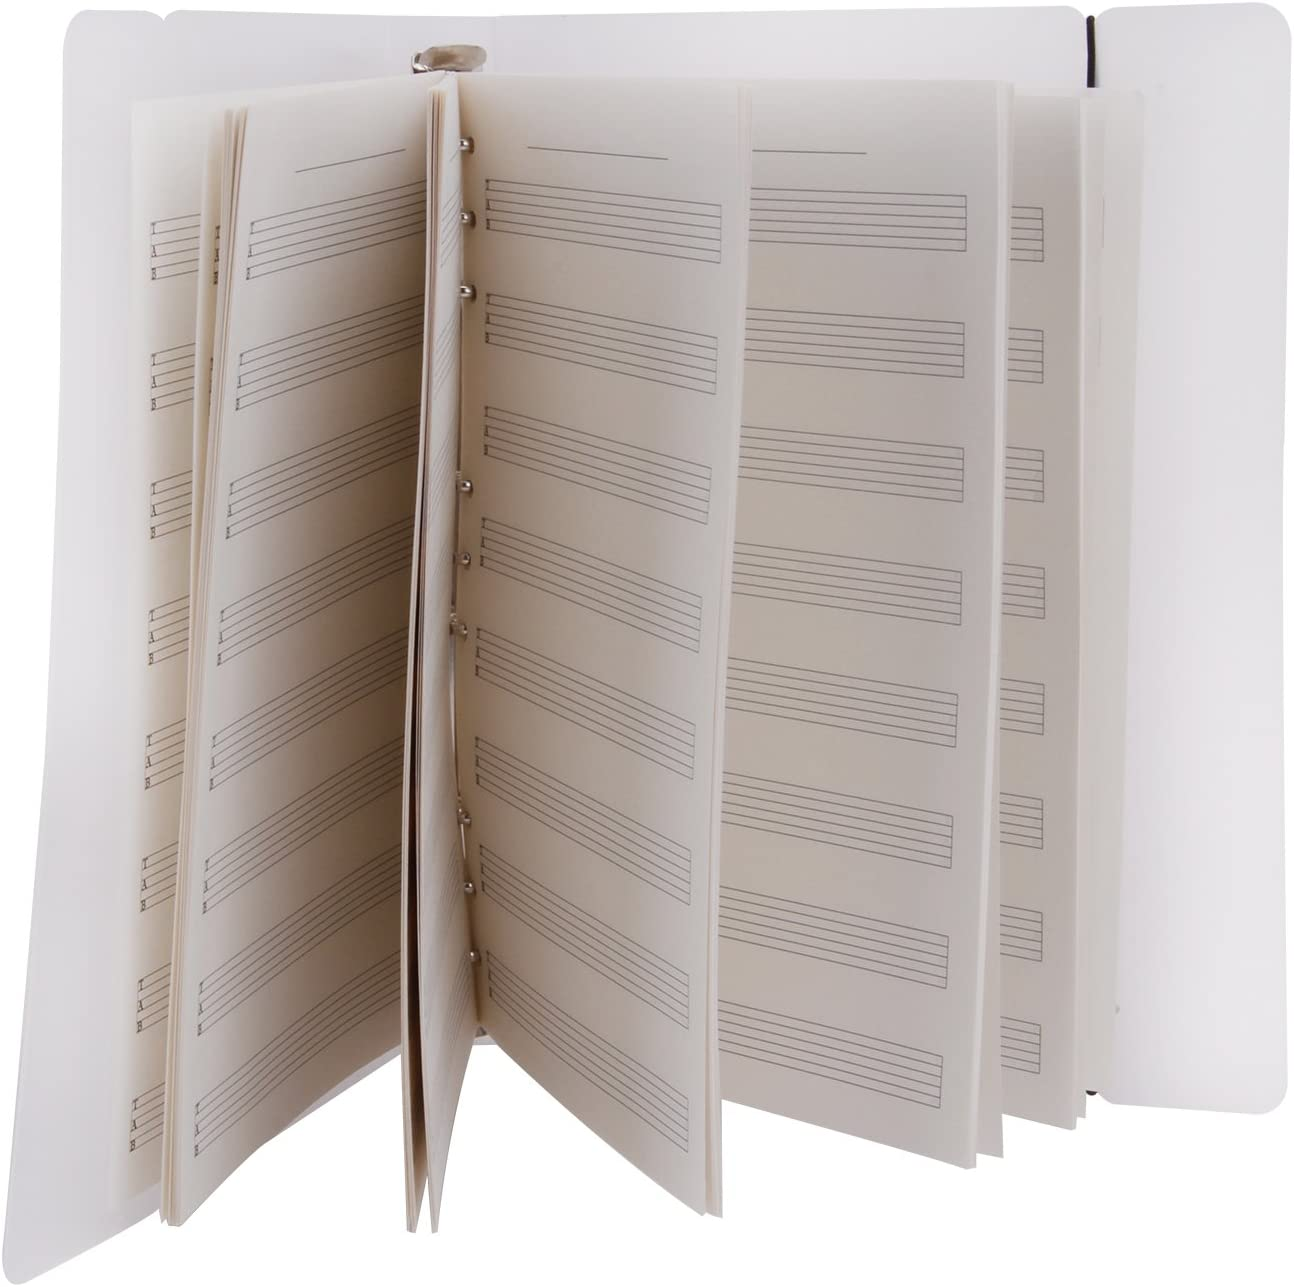 Side Of Binder Template from images-na.ssl-images-amazon.com